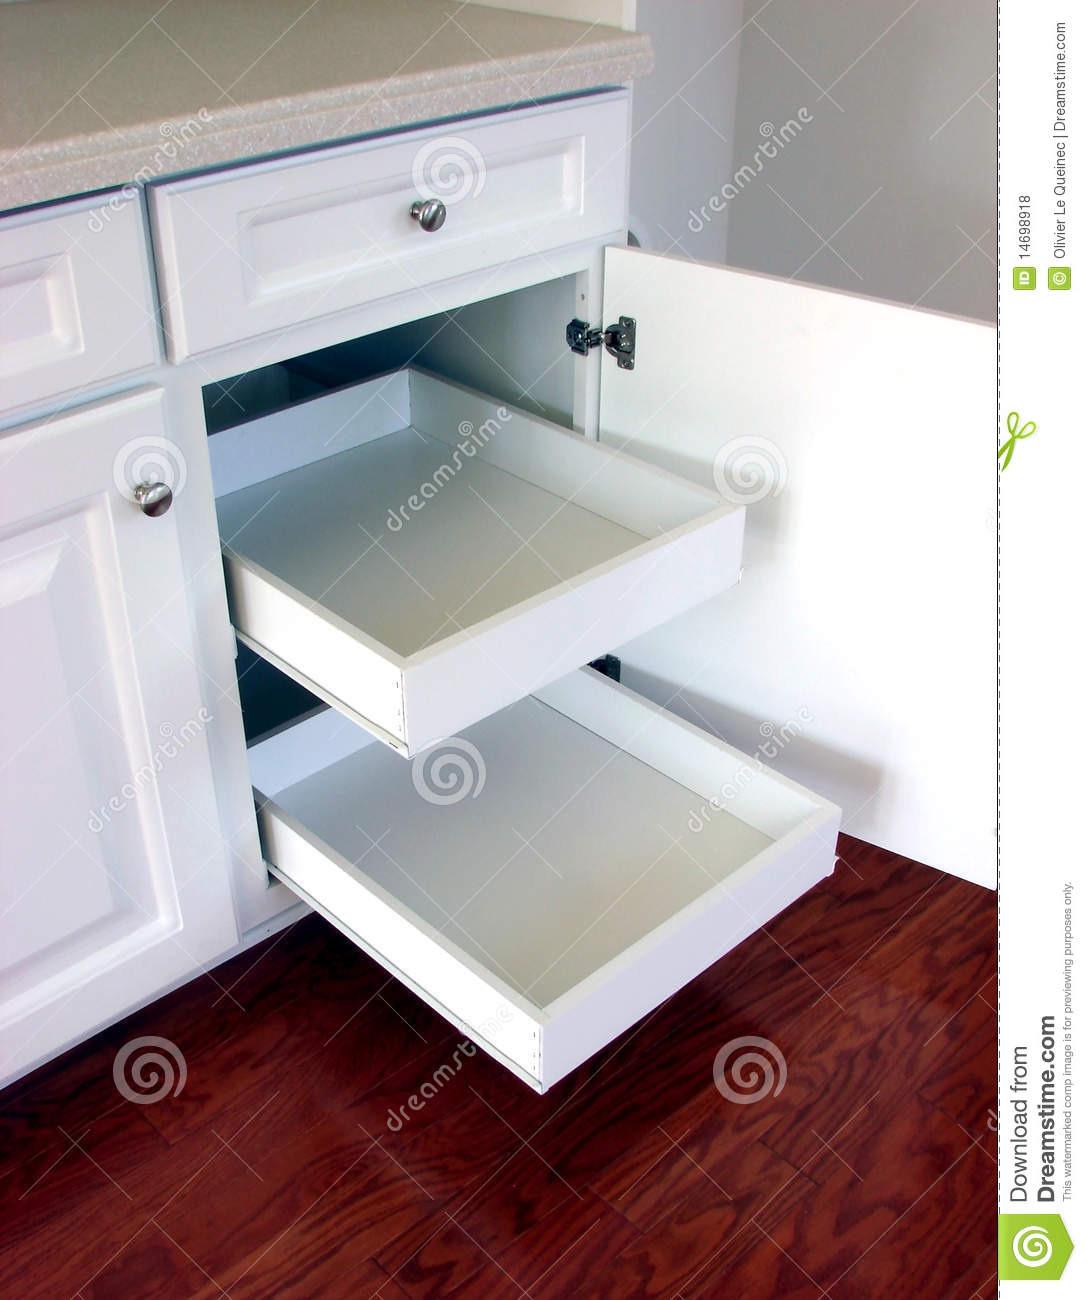 Pull Out Kitchen Drawers Shelves In A Modern House Royalty